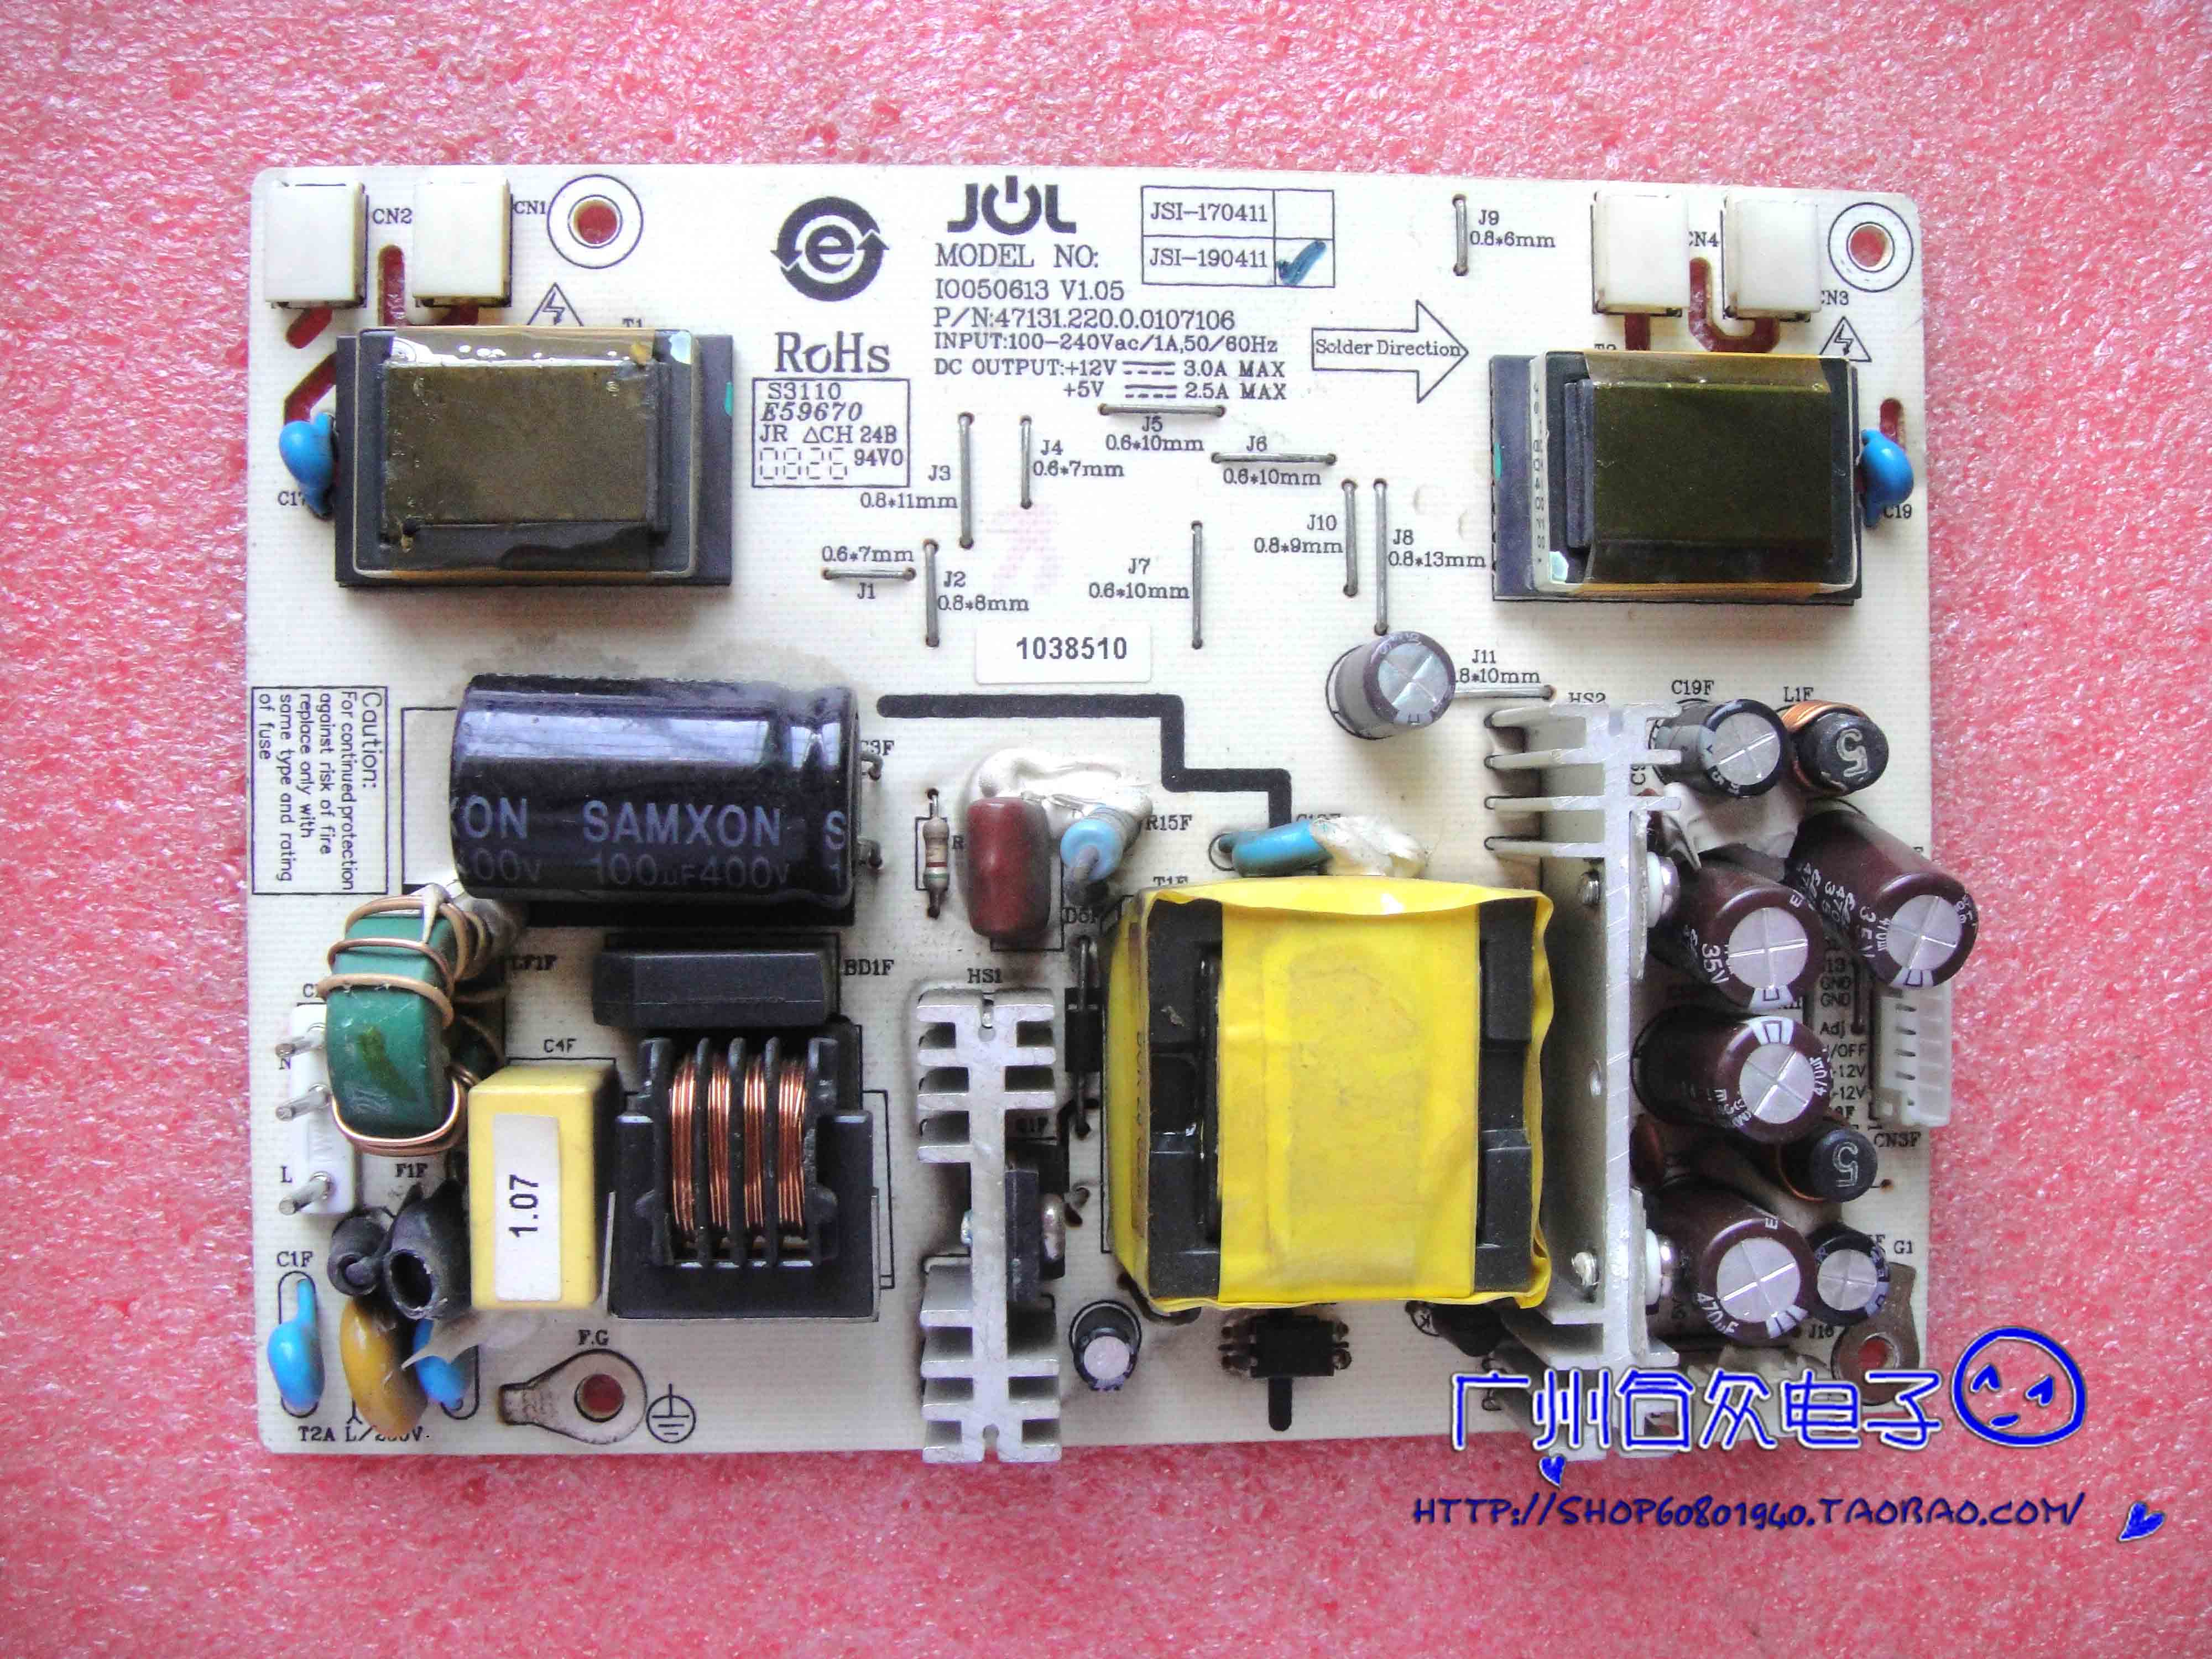 TLM1933 inches high voltage power supply board plate integrally JSI-190411A JSI-170411